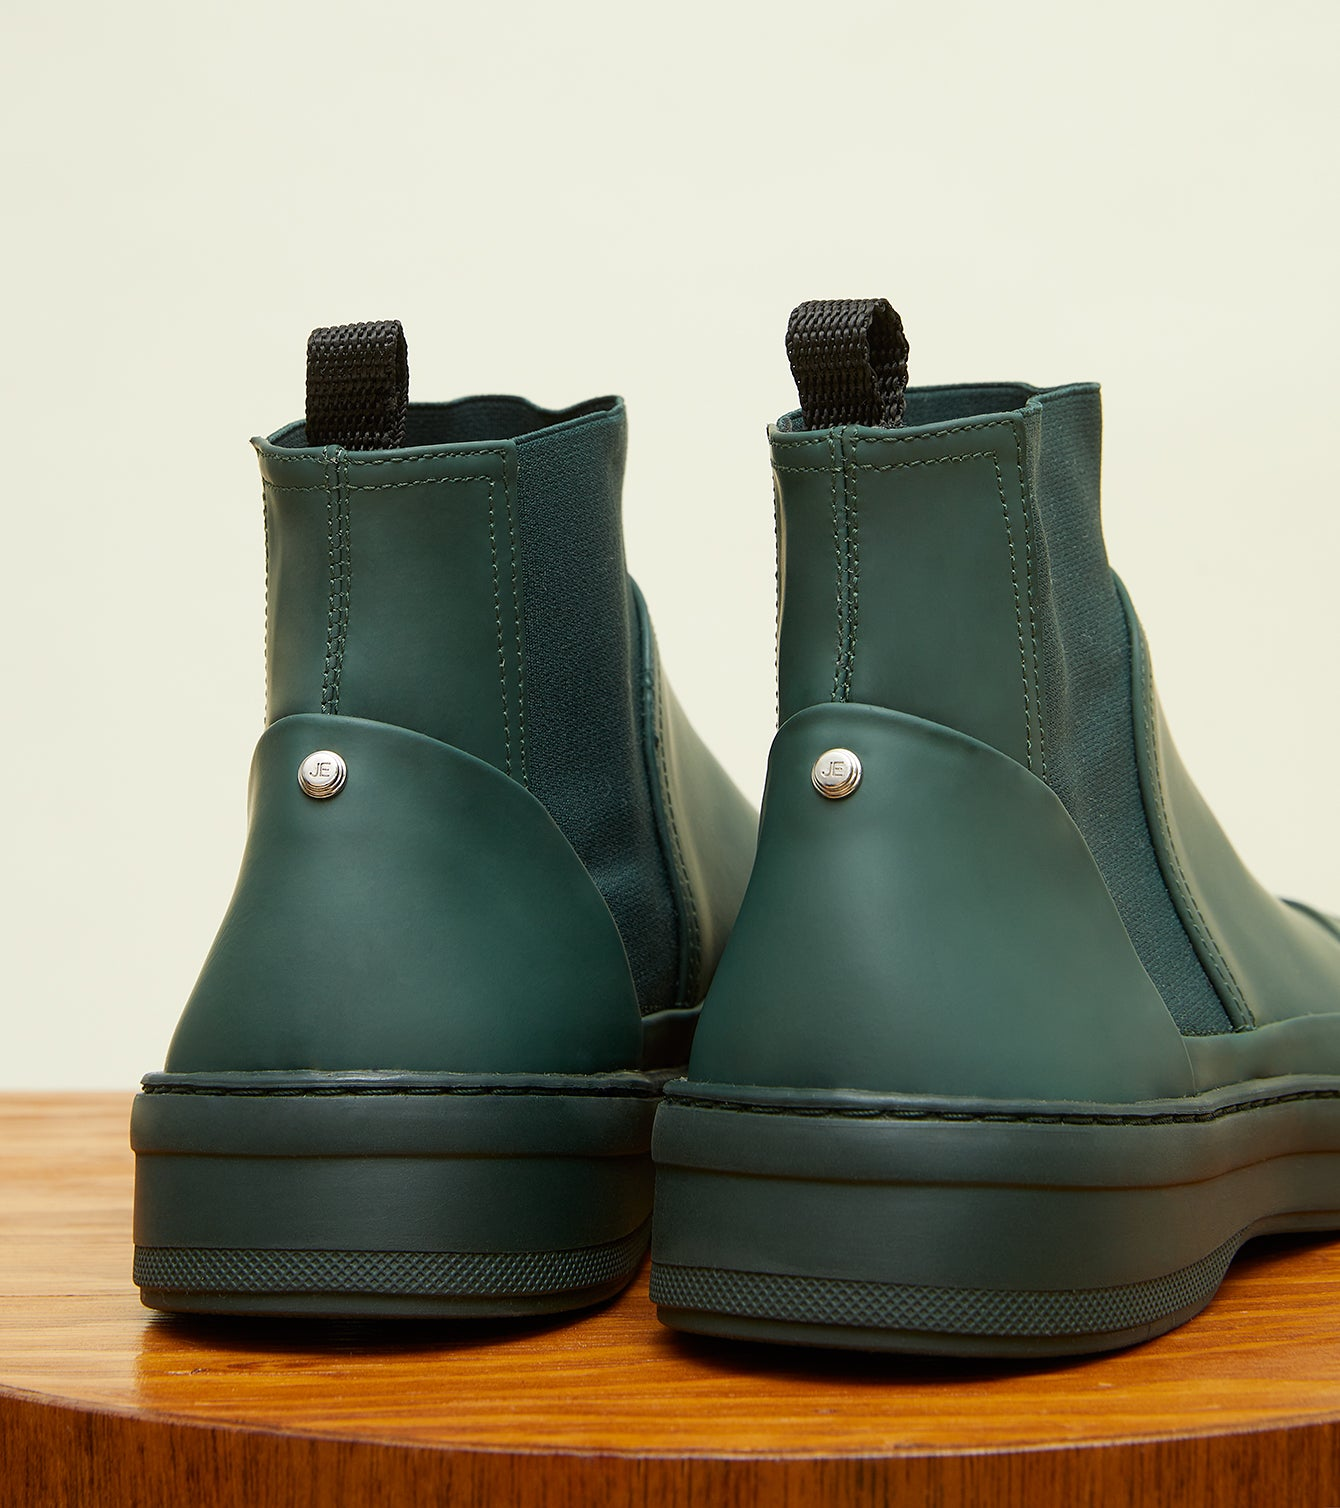 pine-green-gum-leather